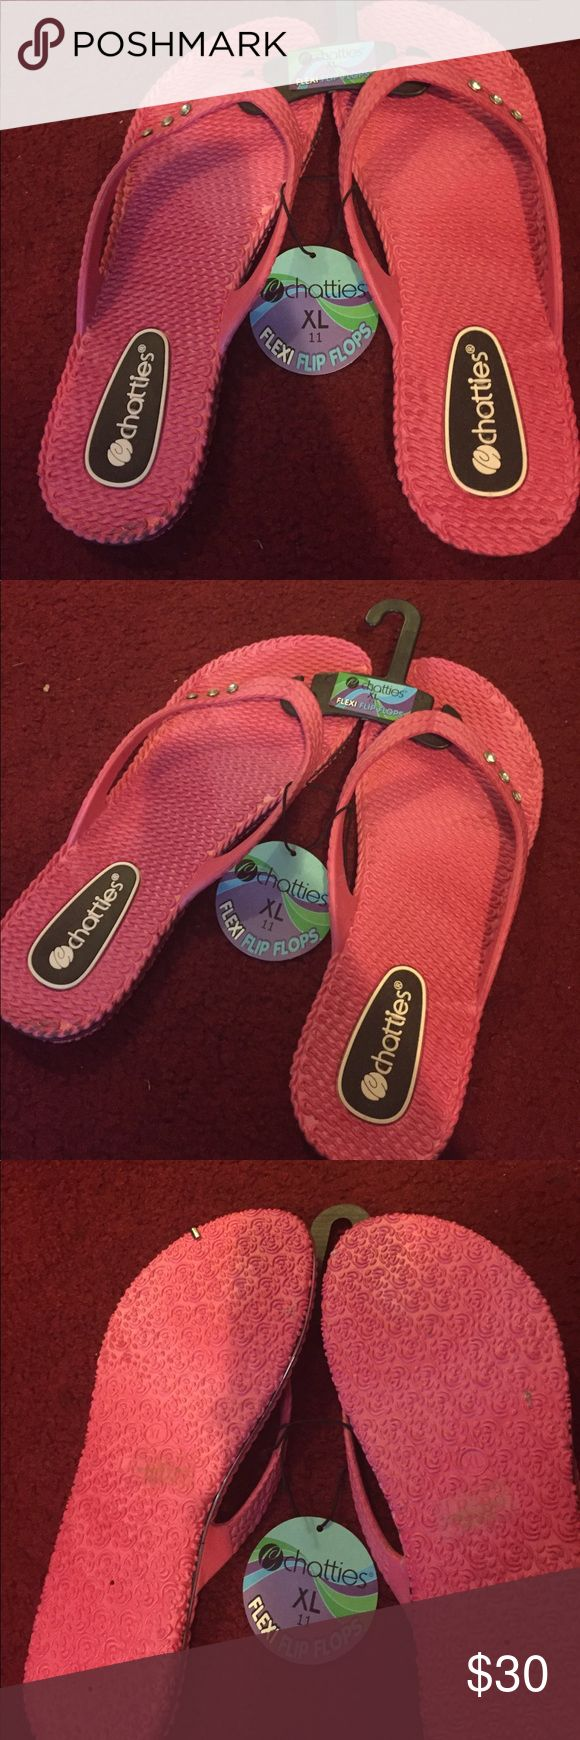 New flexi flip flops from chatties New flexi flip flops from chatties extra large size 11 Shoes Flats & Loafers